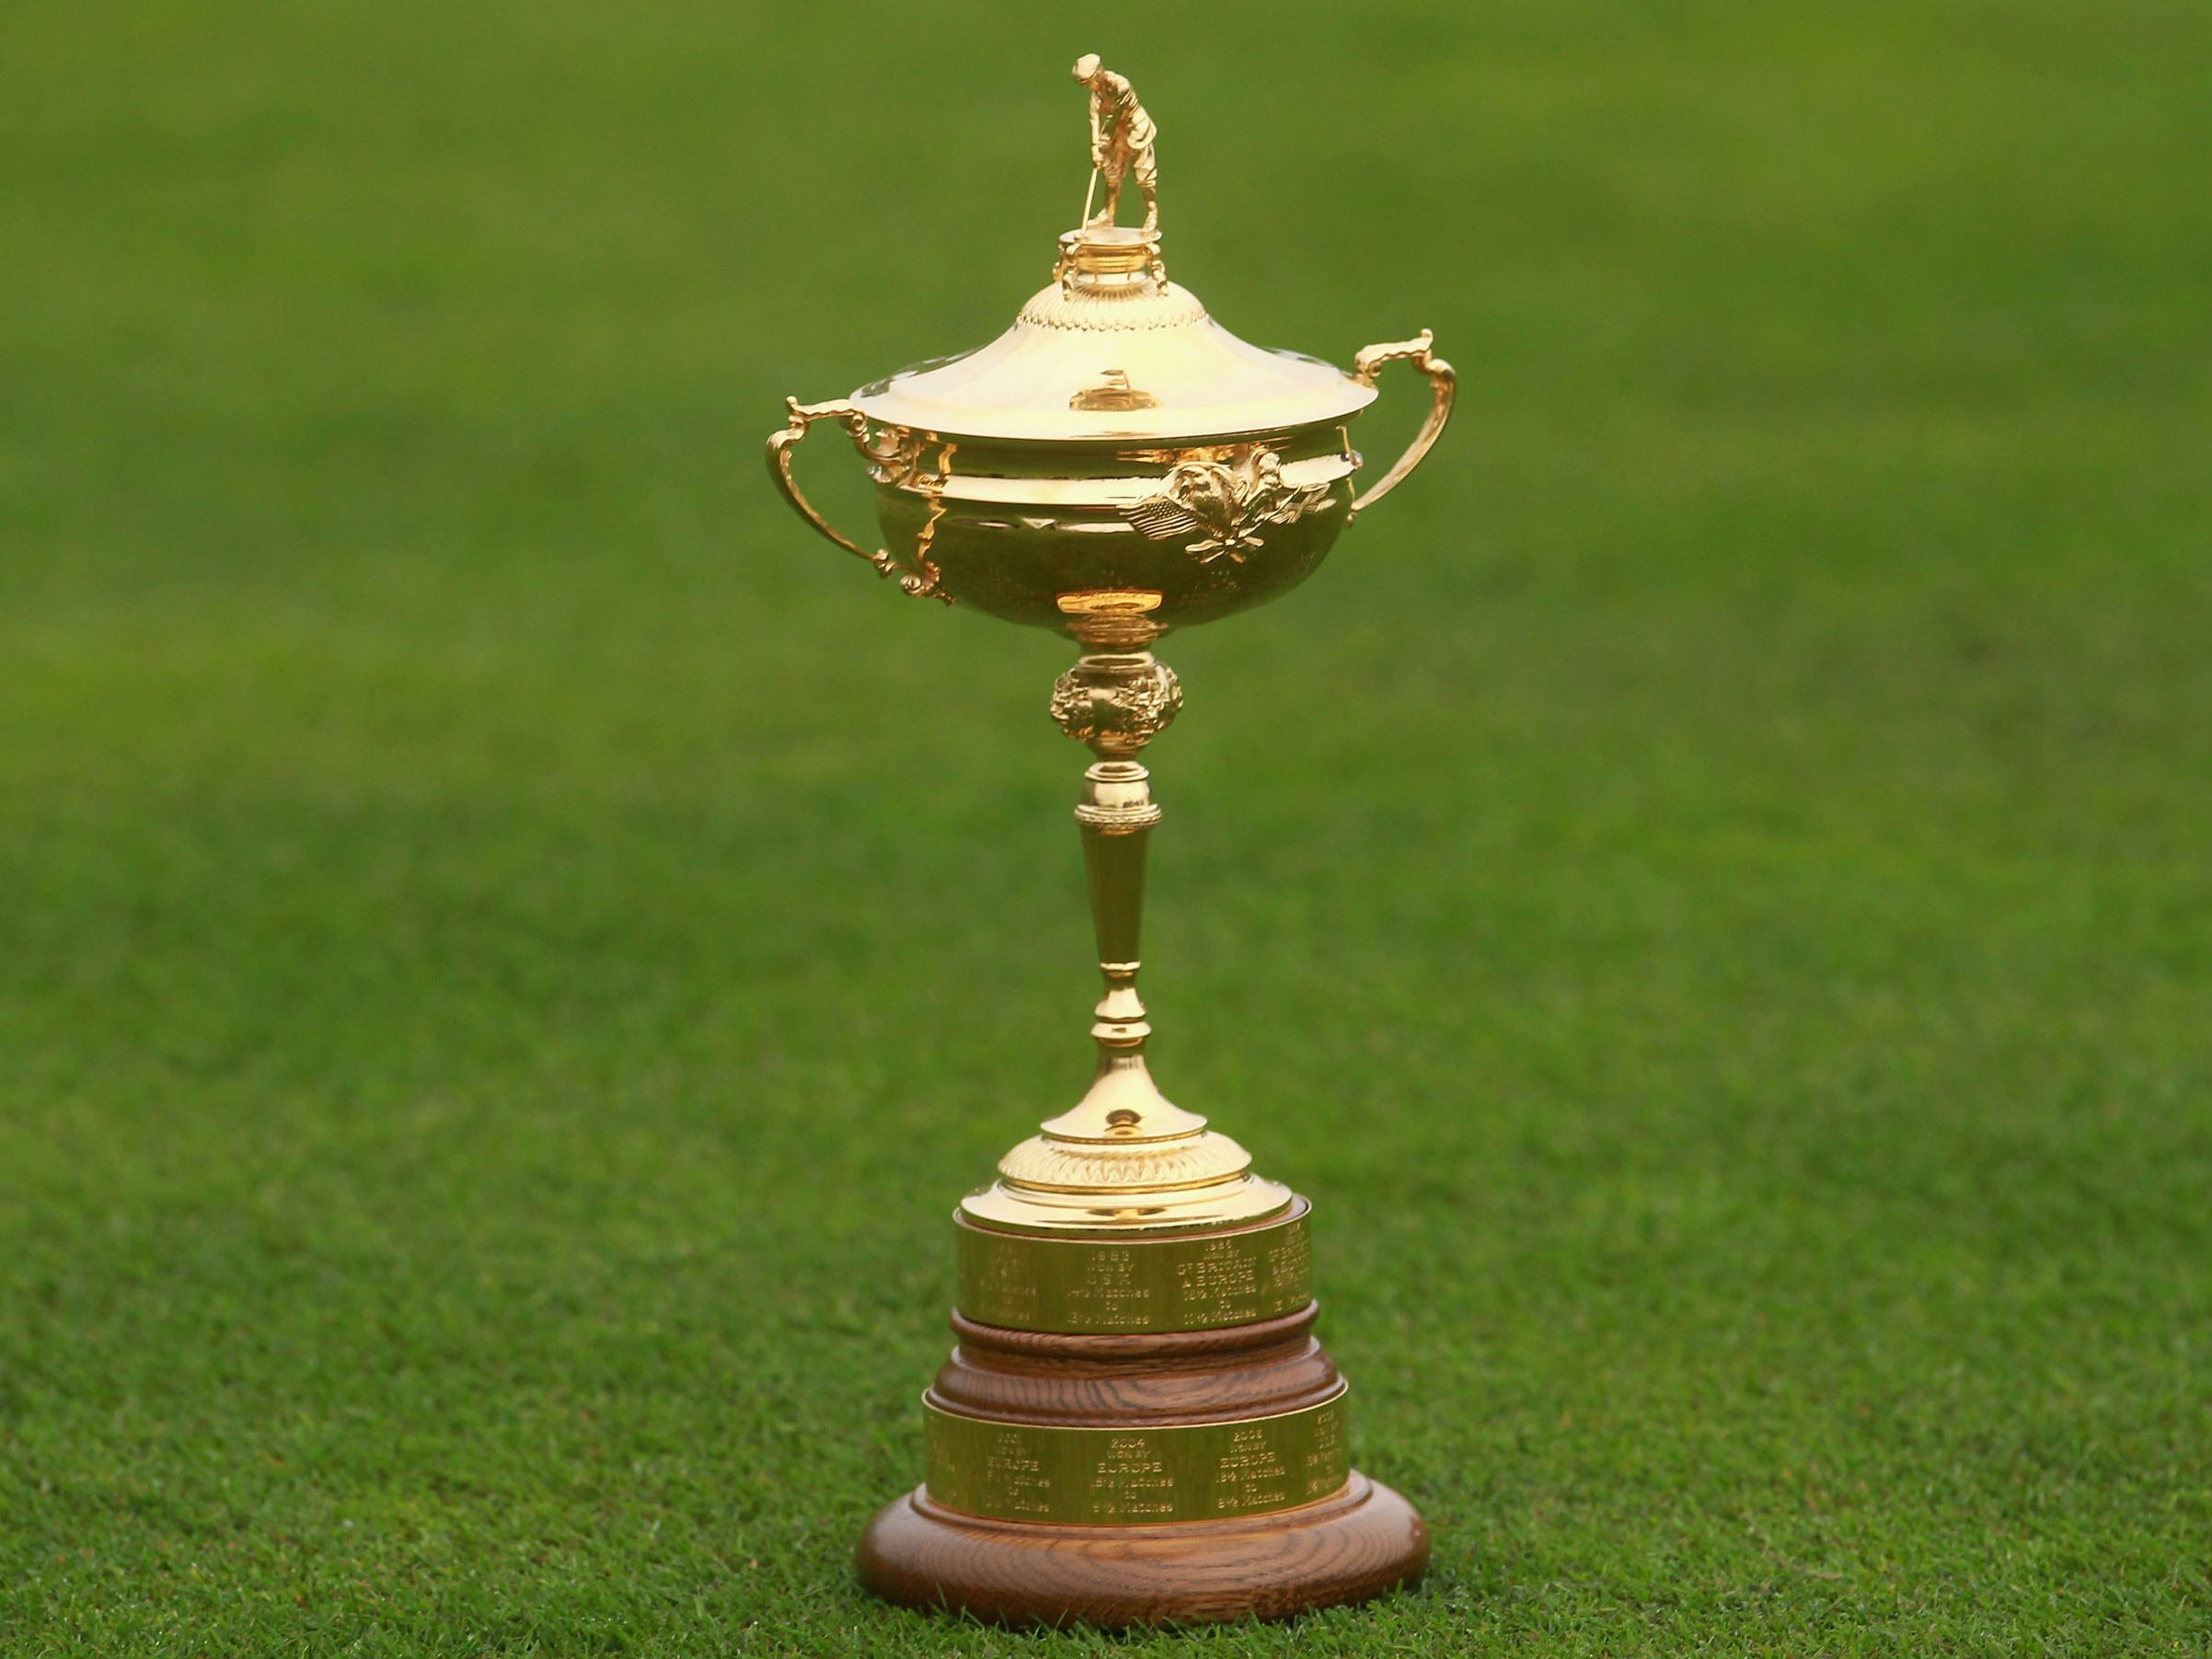 Interesting Facts About the Ryder Cup Trophy